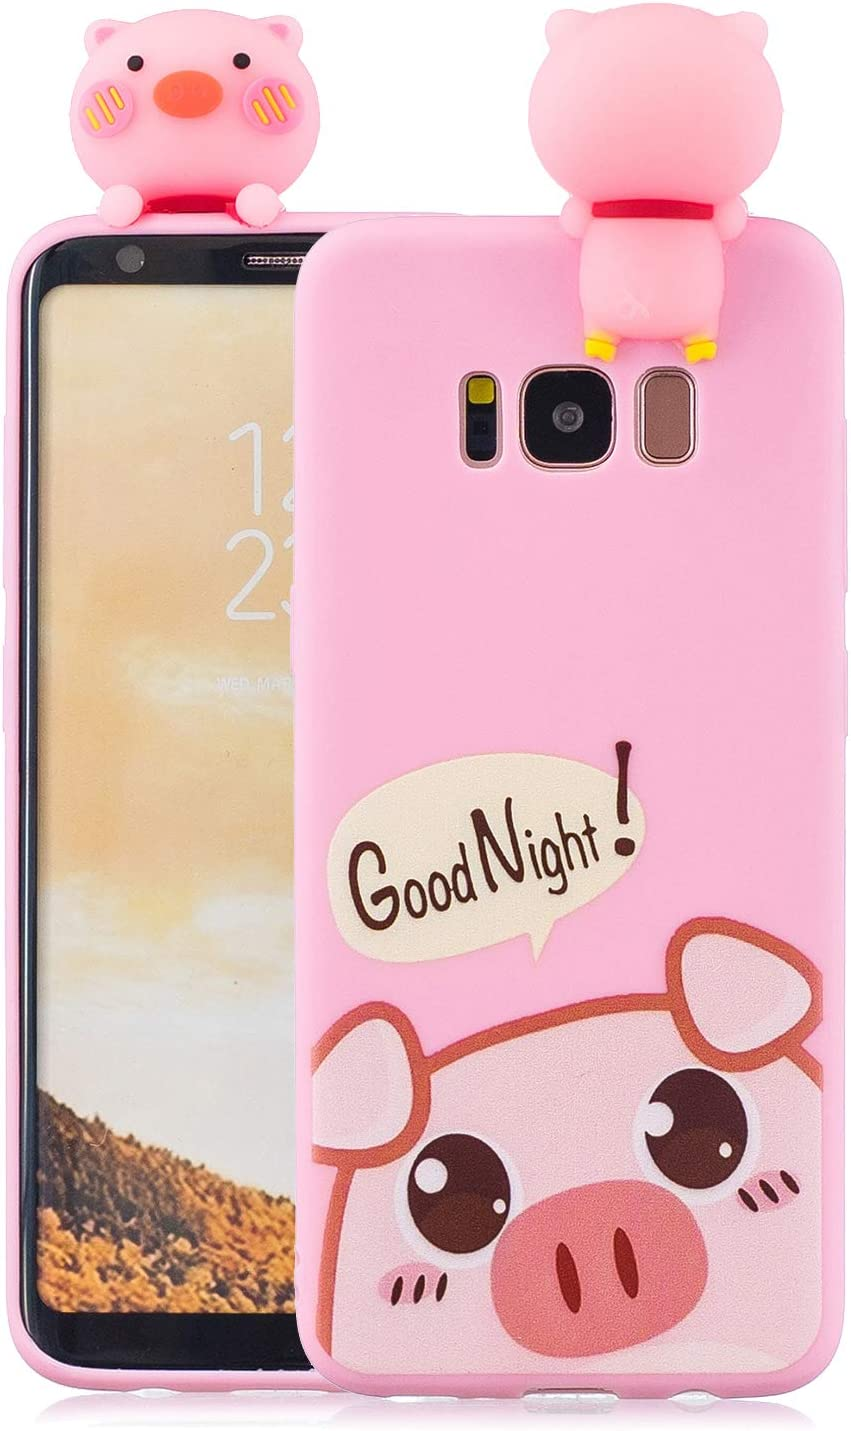 Soft Silicone Case for Samsung Galaxy Aoucase Thin An S8 Financial sales sale Soldering 3D Slim